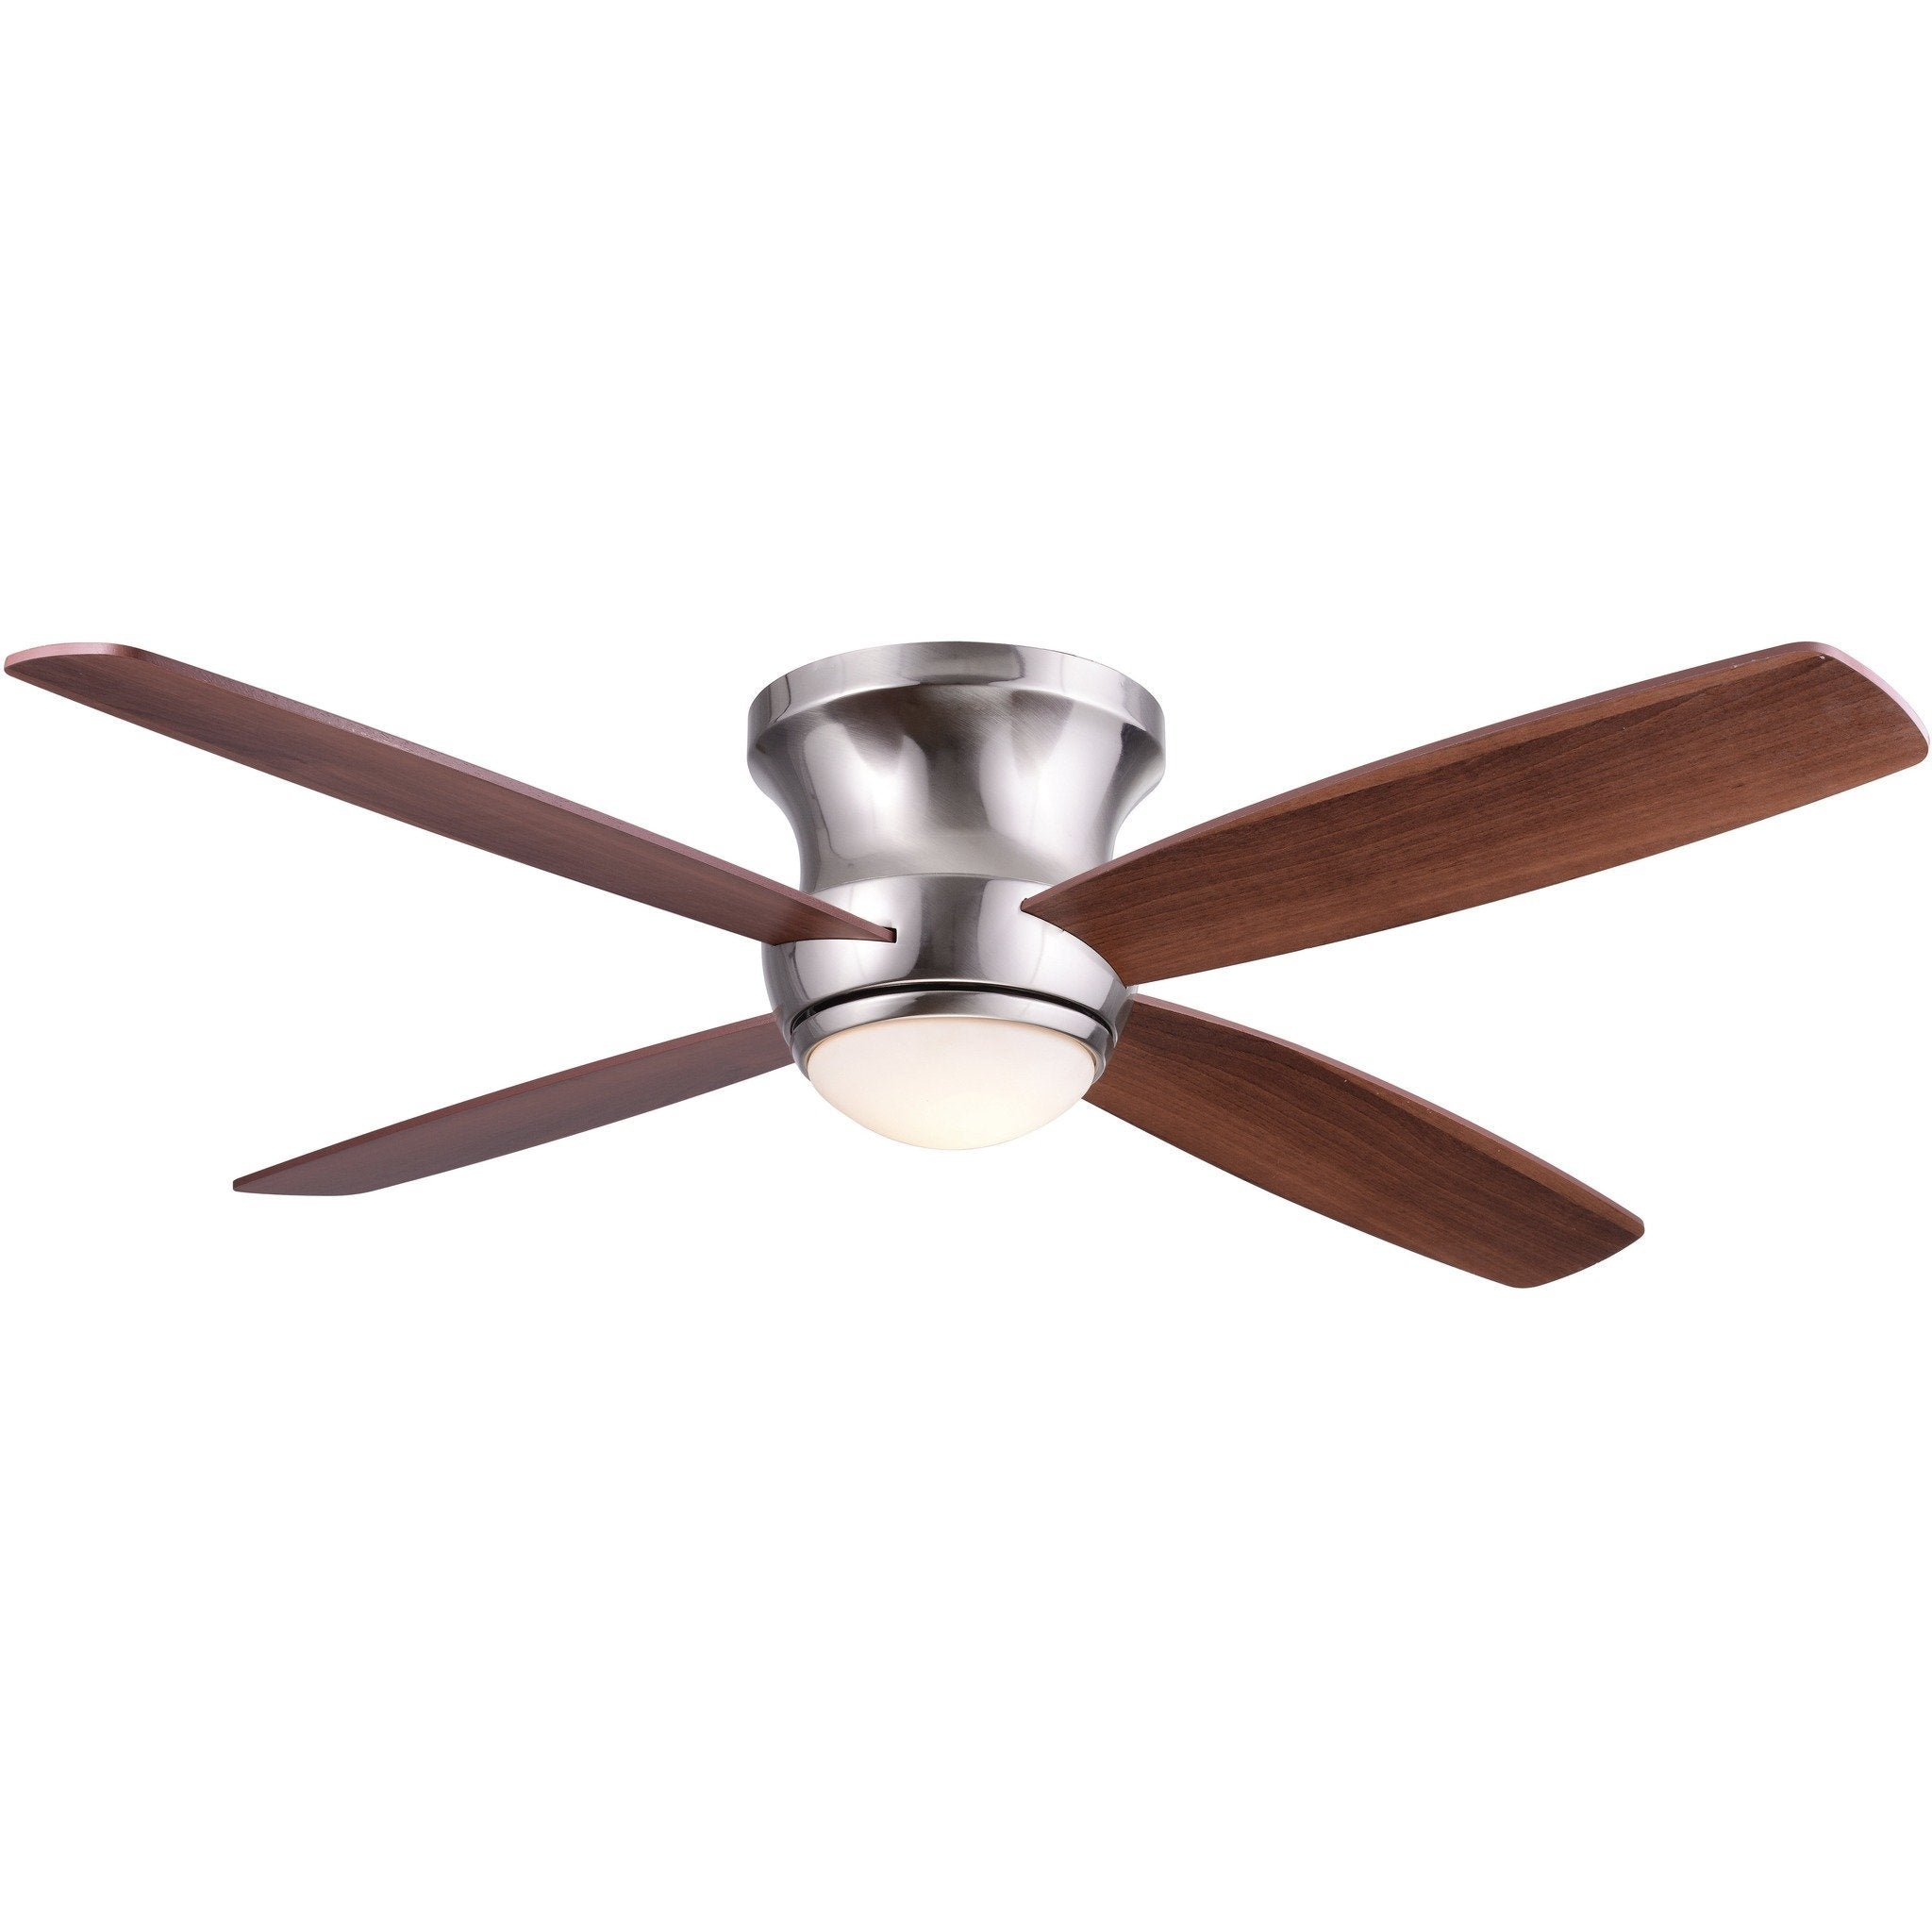 Wind River Zorion Ceiling Fan